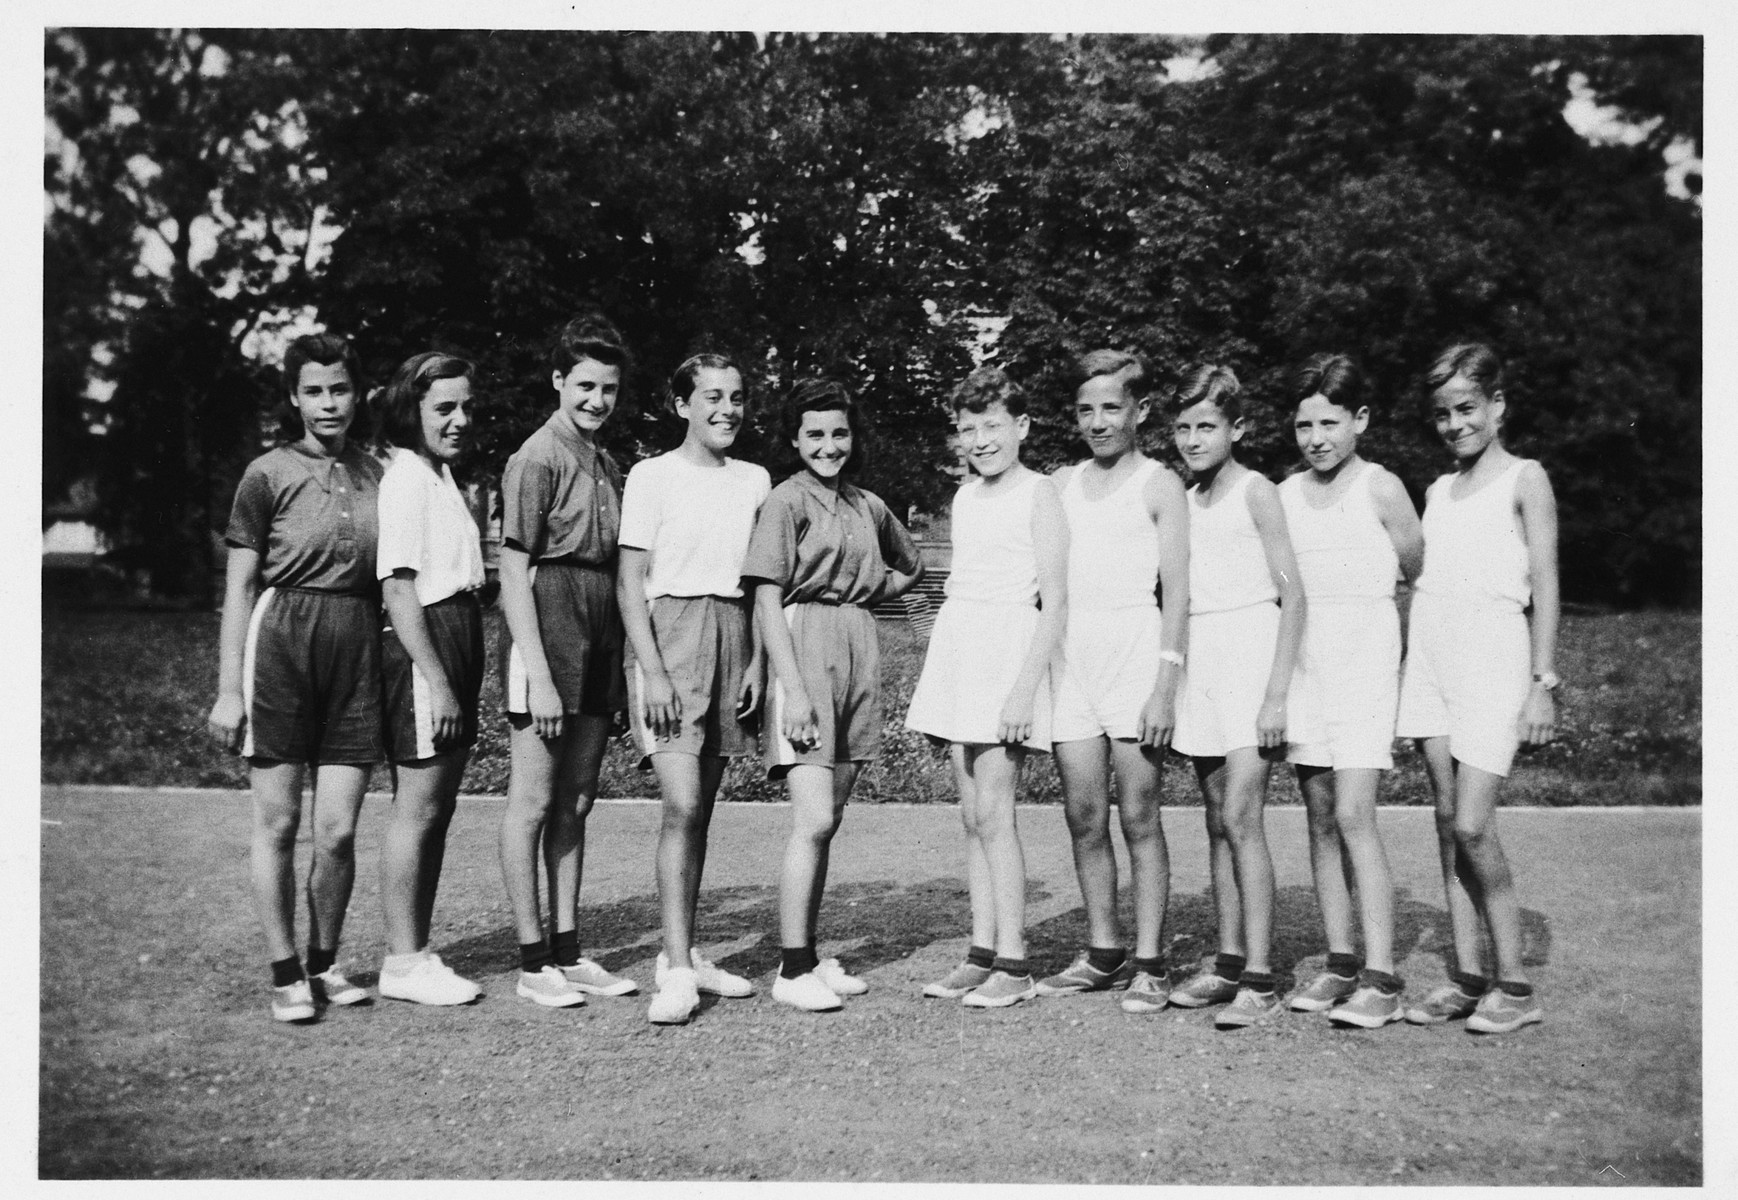 A group of refugee girls from the Russian and Spanish civil wars pose with a group of Jewish refugee boys who came to France on a Kindertransport from Germany at a children's home in Quincy-sous-Senart.  Pictured from left to right are Consuelo Martin, Nati Macaya, Mercedes Martin, Pilar Fernandez, Niaves Martin, Egon Heysmann, Gerhard Rosenzweig, Heinz Rettig, Heinz Levy and Wolfgang Blumenreich.